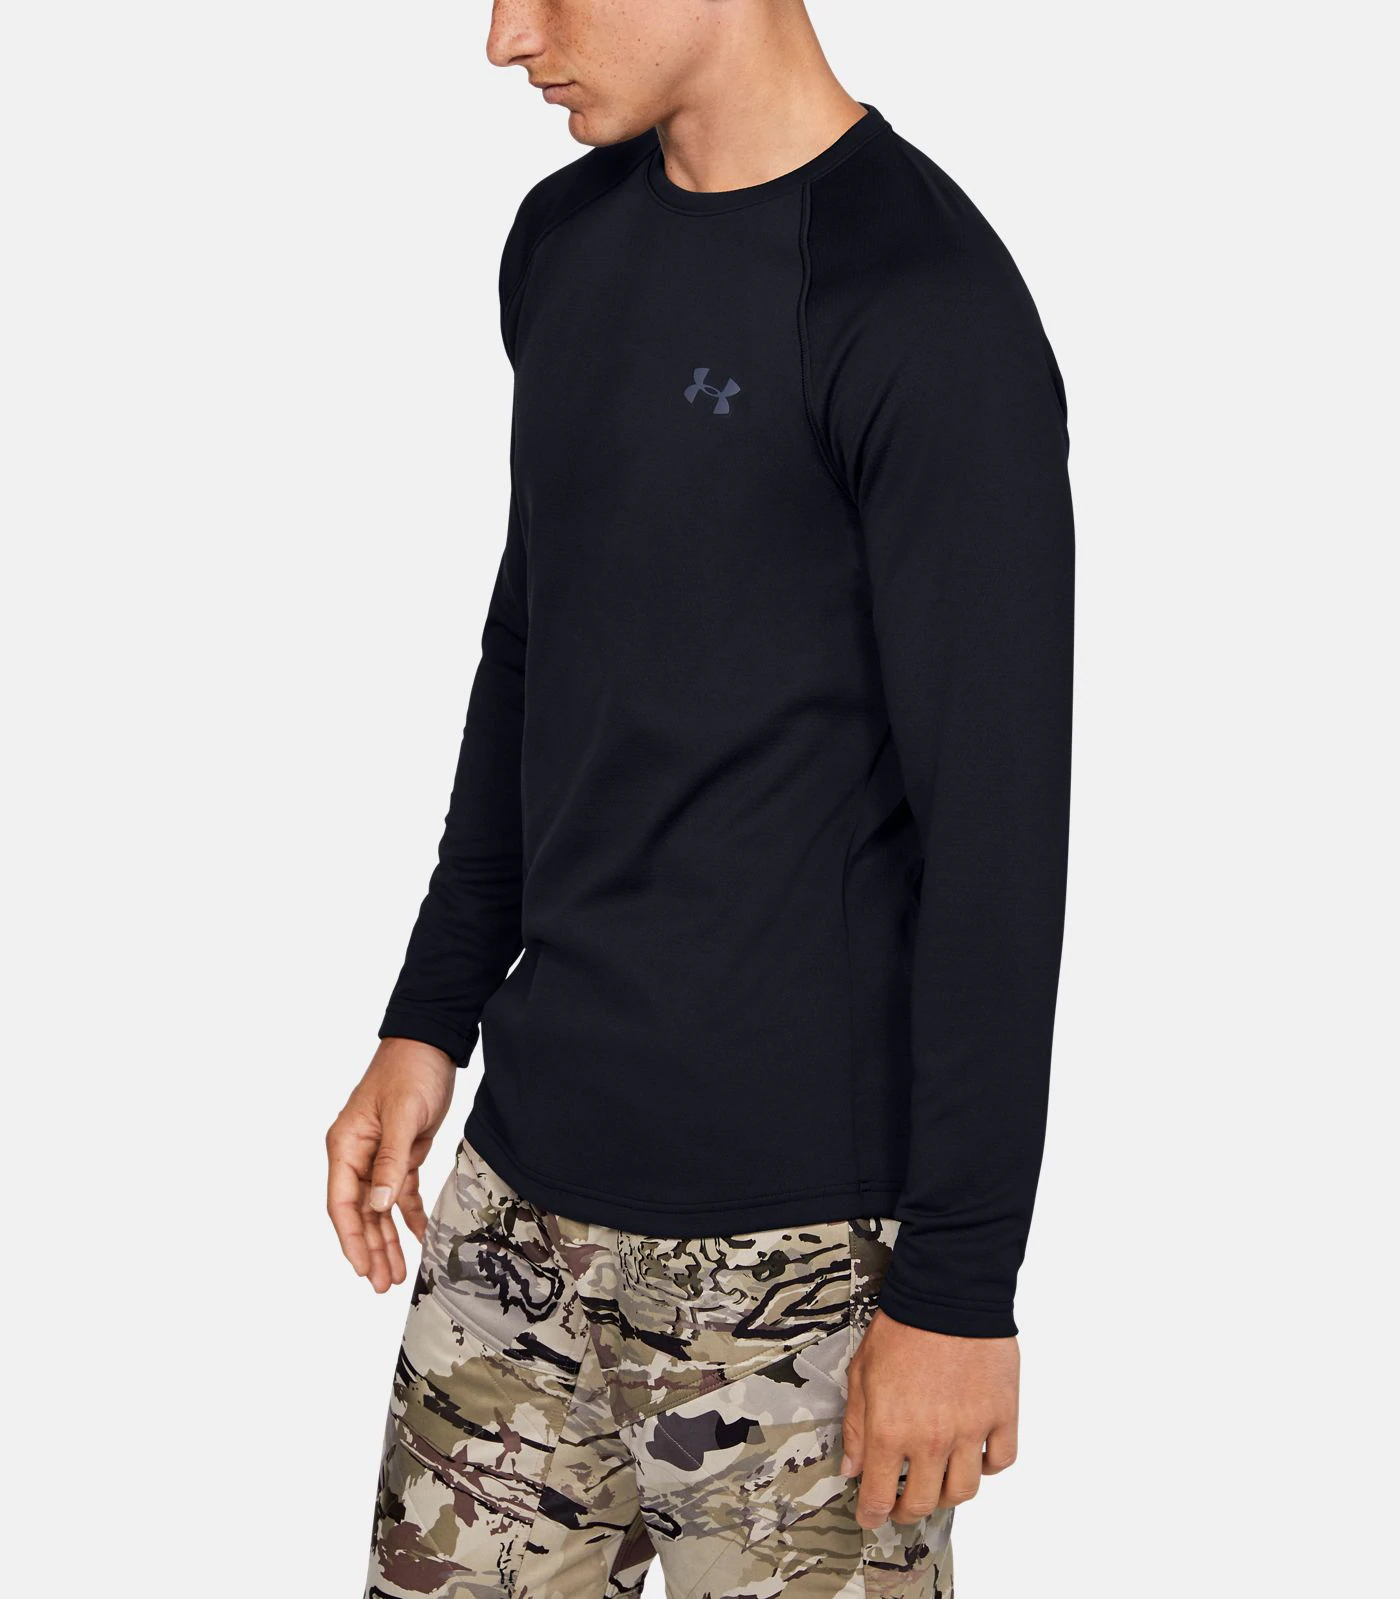 MENS_BASE-LAYERS-4_LS_UAR1353349001_09